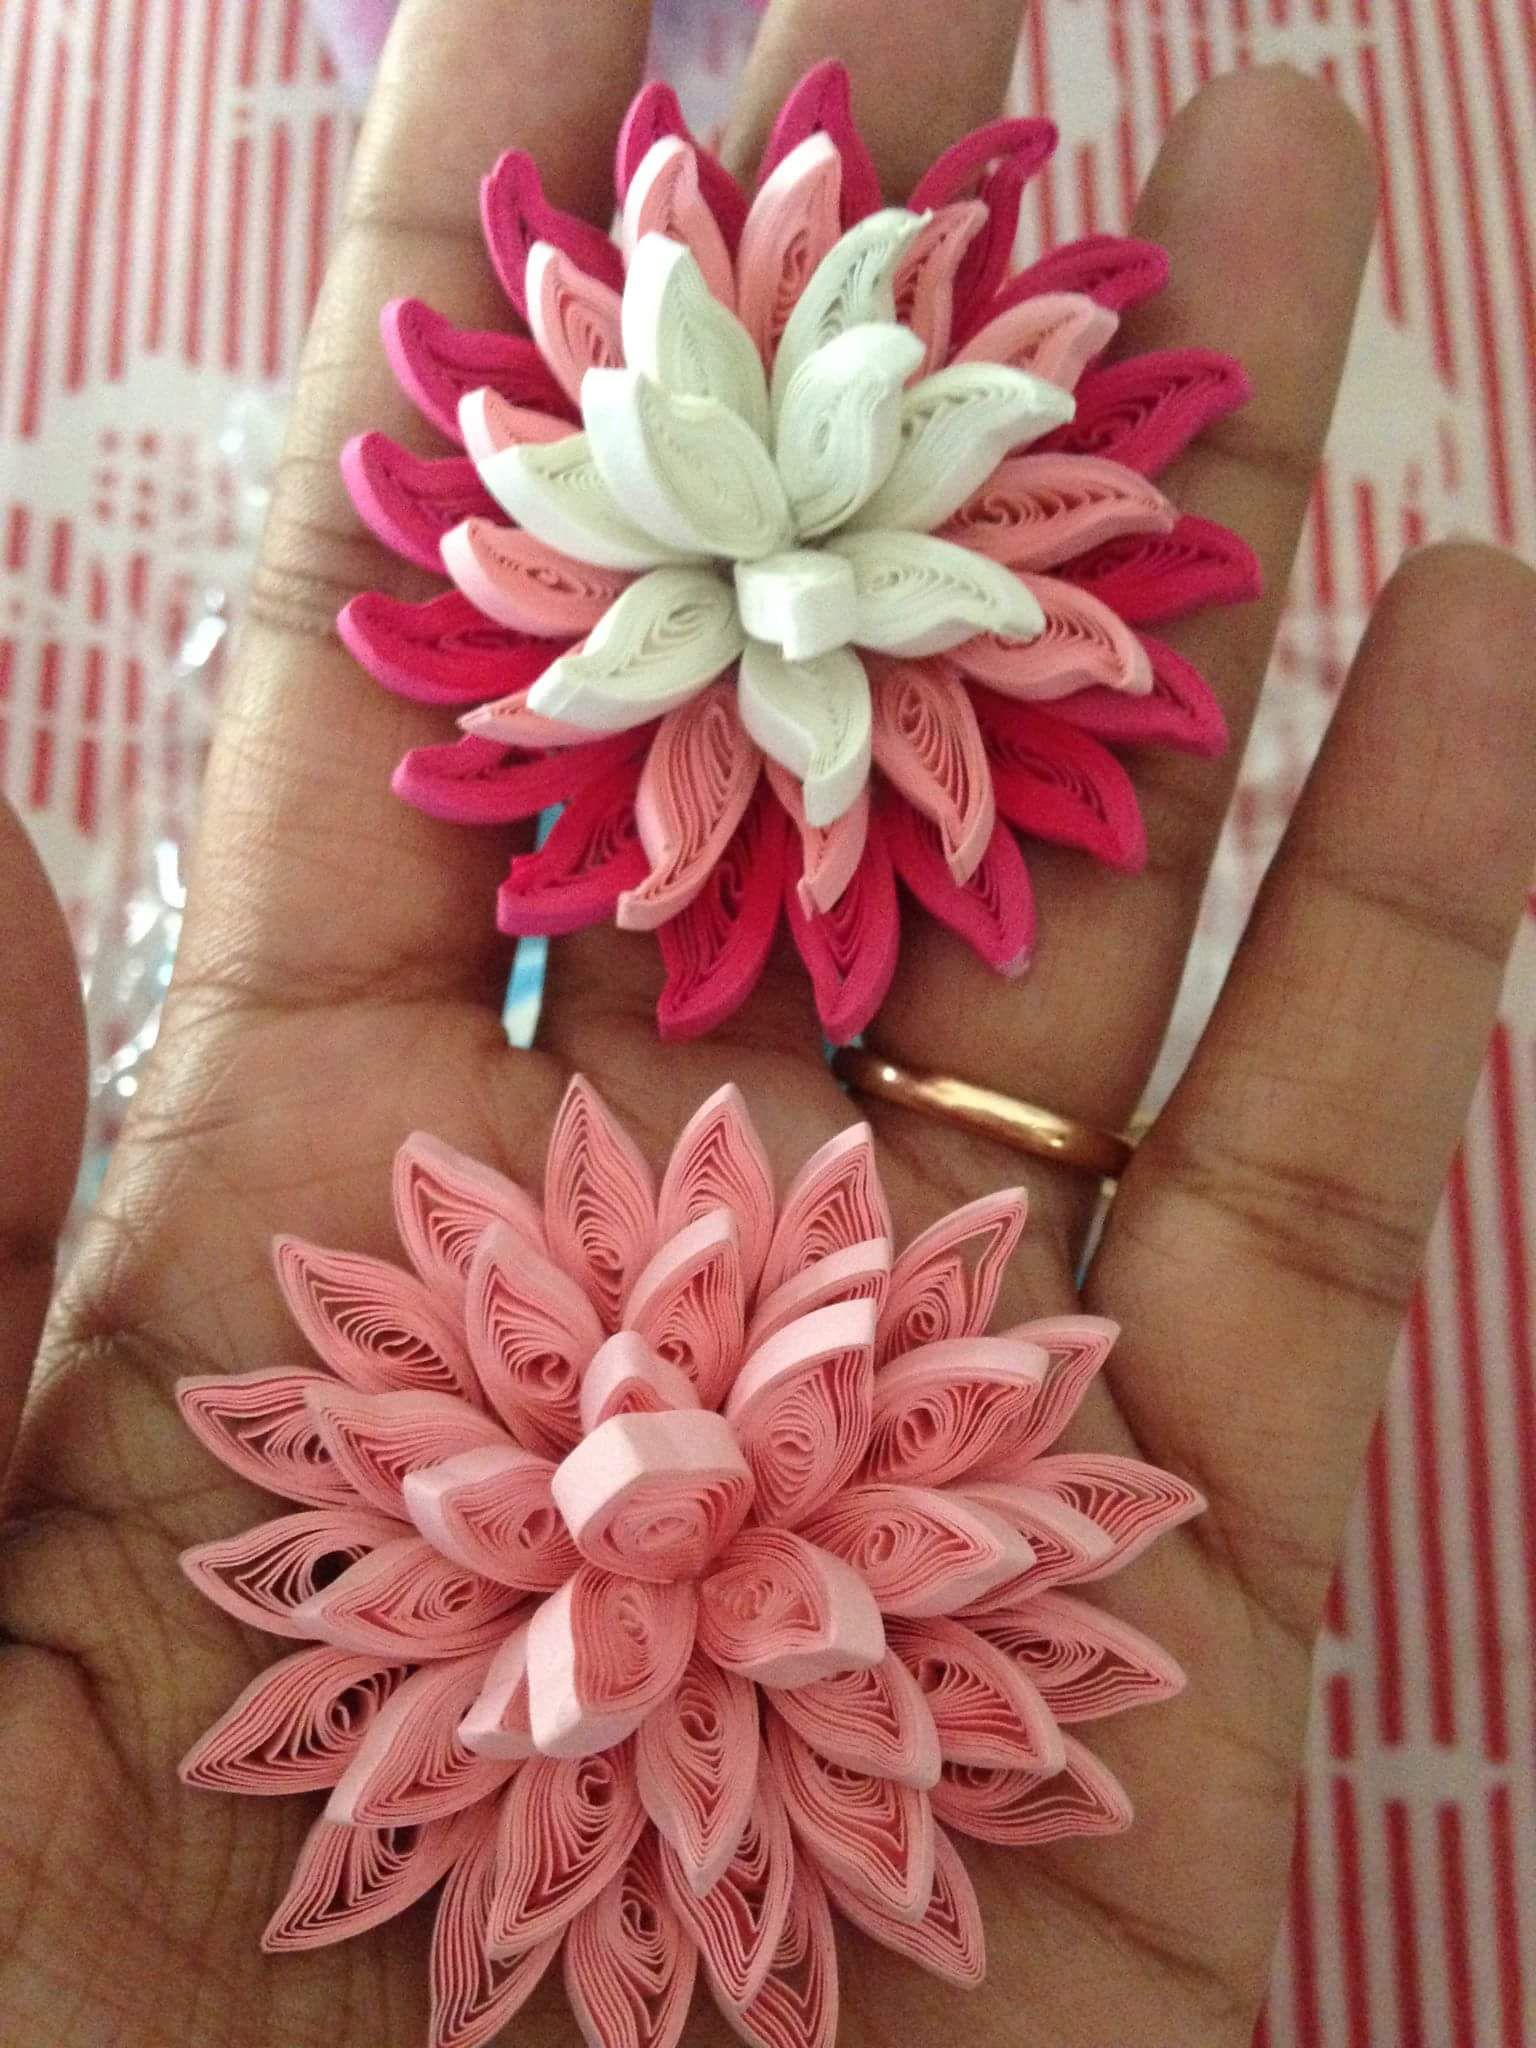 Pin By Nazl Bykl On Quilling 2 Pinterest Quilling Paper